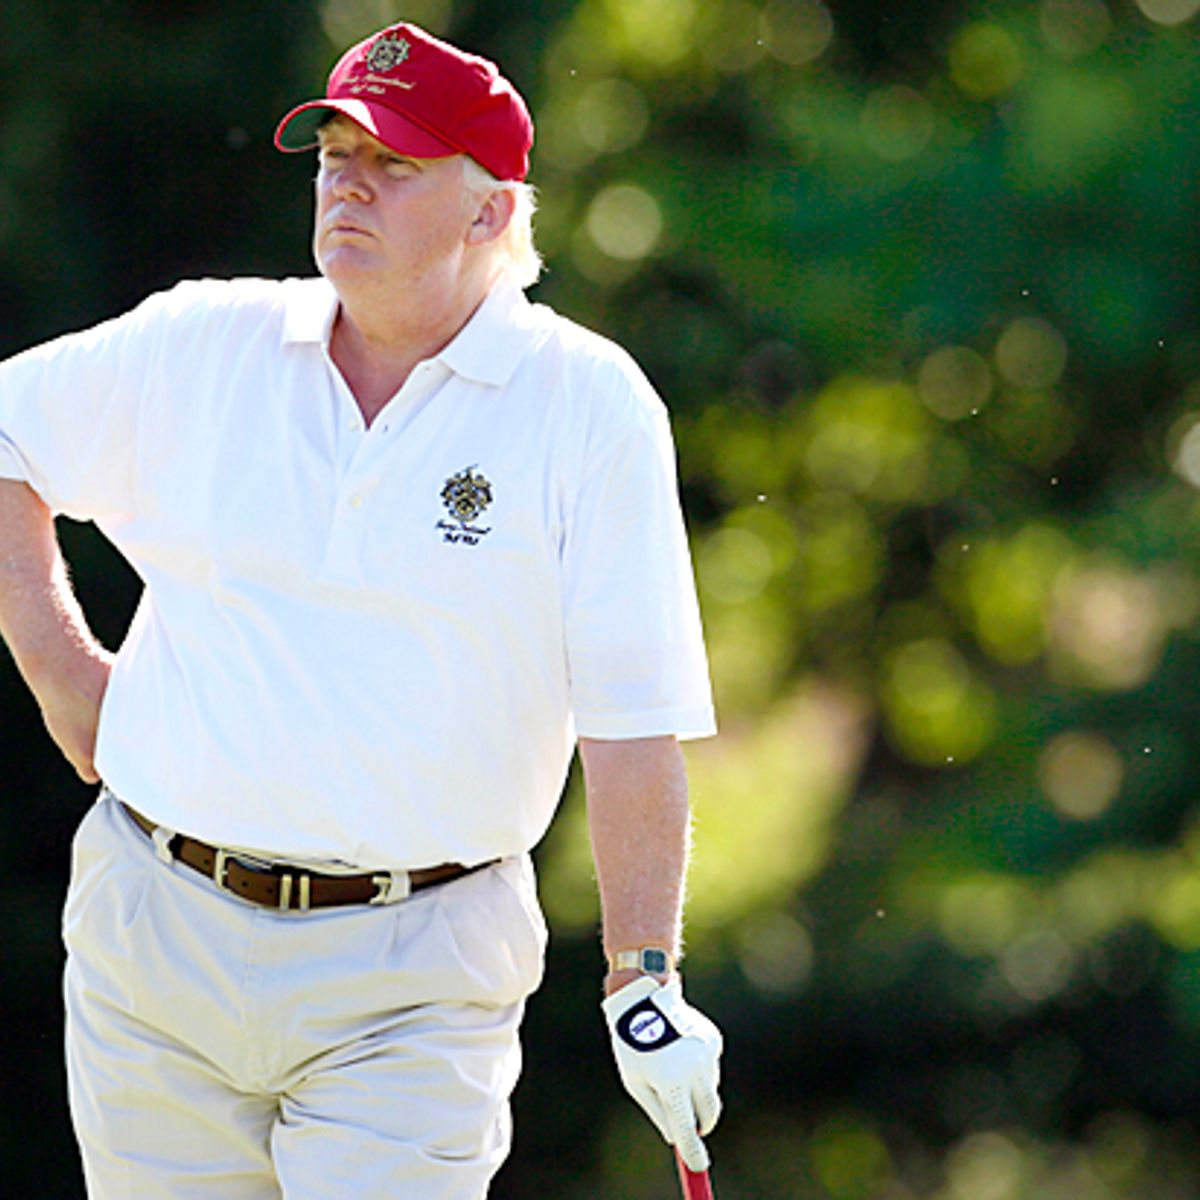 FBI investigating Trump golf club for hiring undocumented workers after tip to Mueller